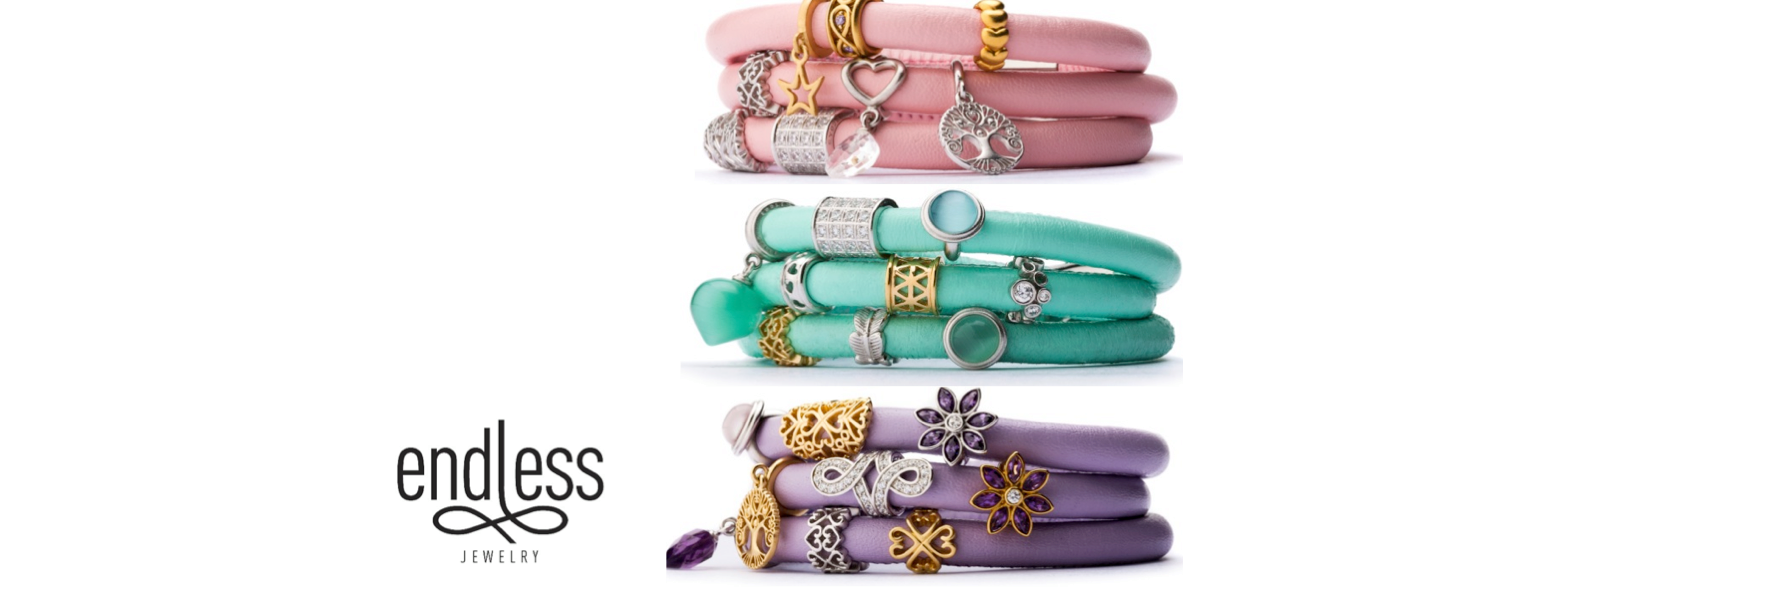 All endless jewelry is now 50% off.